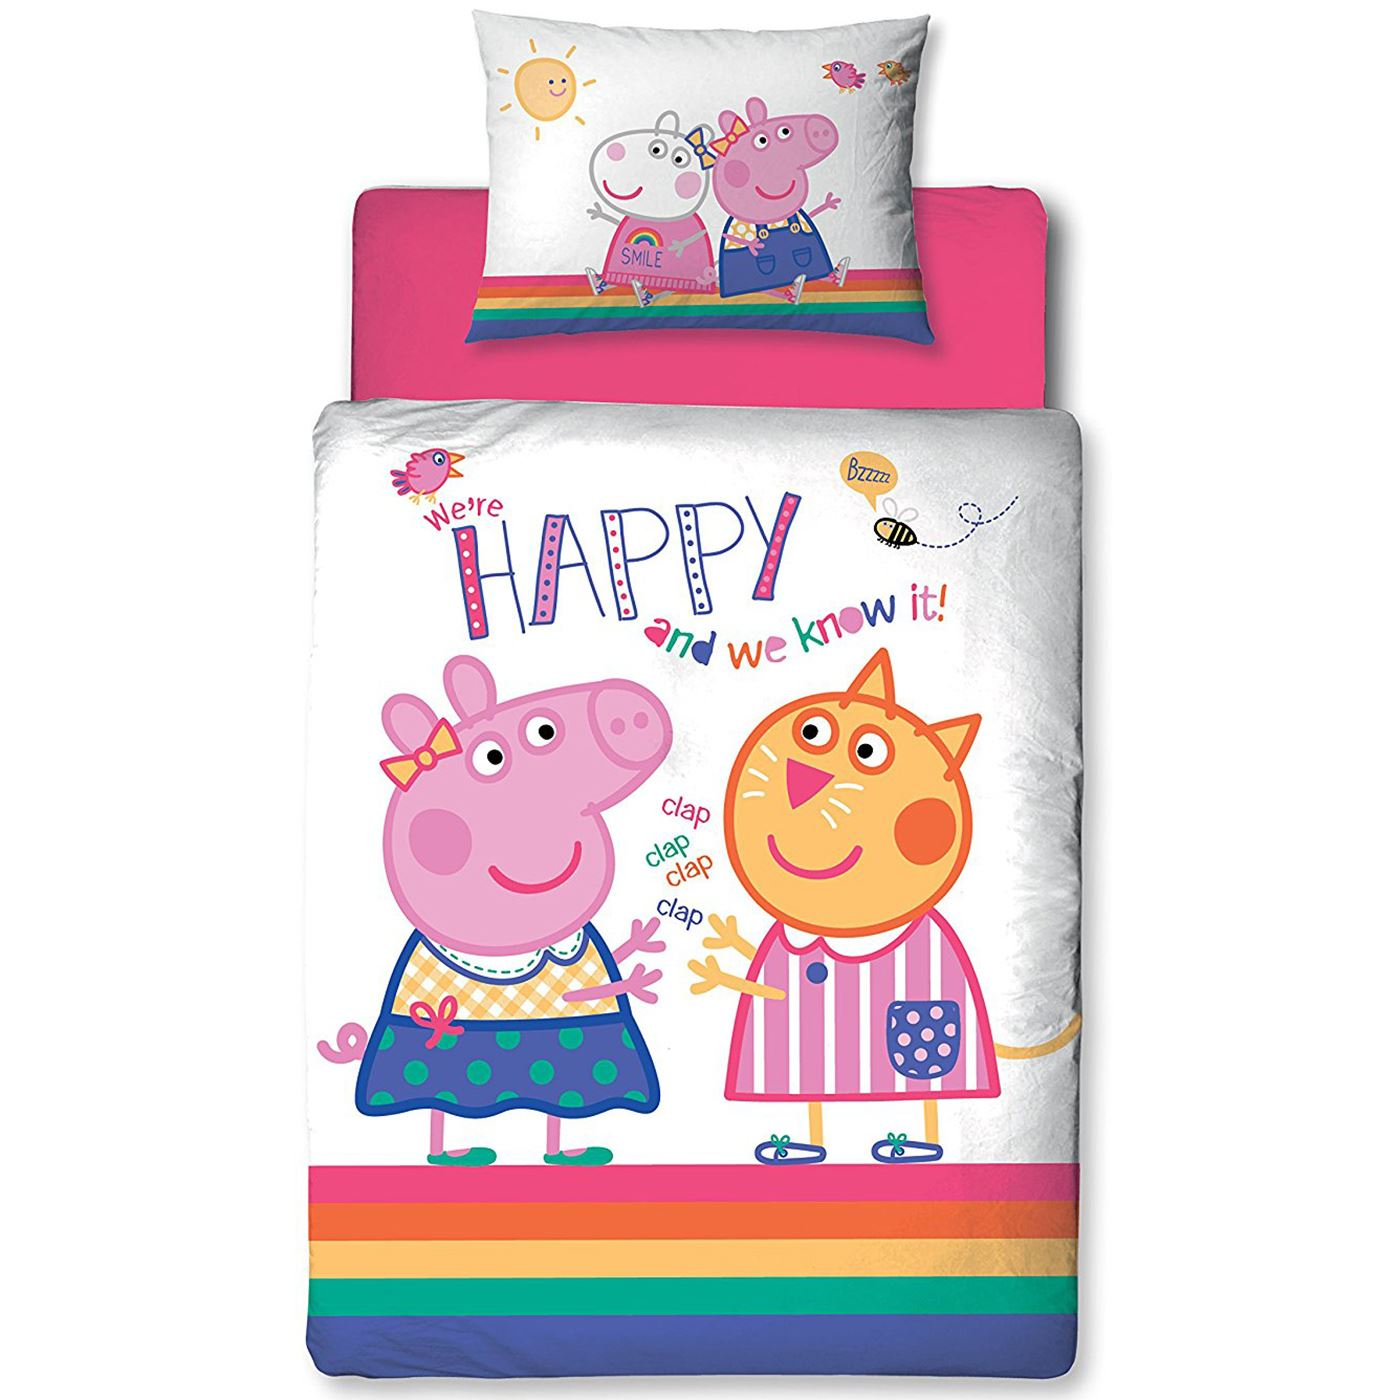 Peppa Pig Bettwäsche Peppa Pig Hurra Junior Kleinkinder Bettwäsche Set